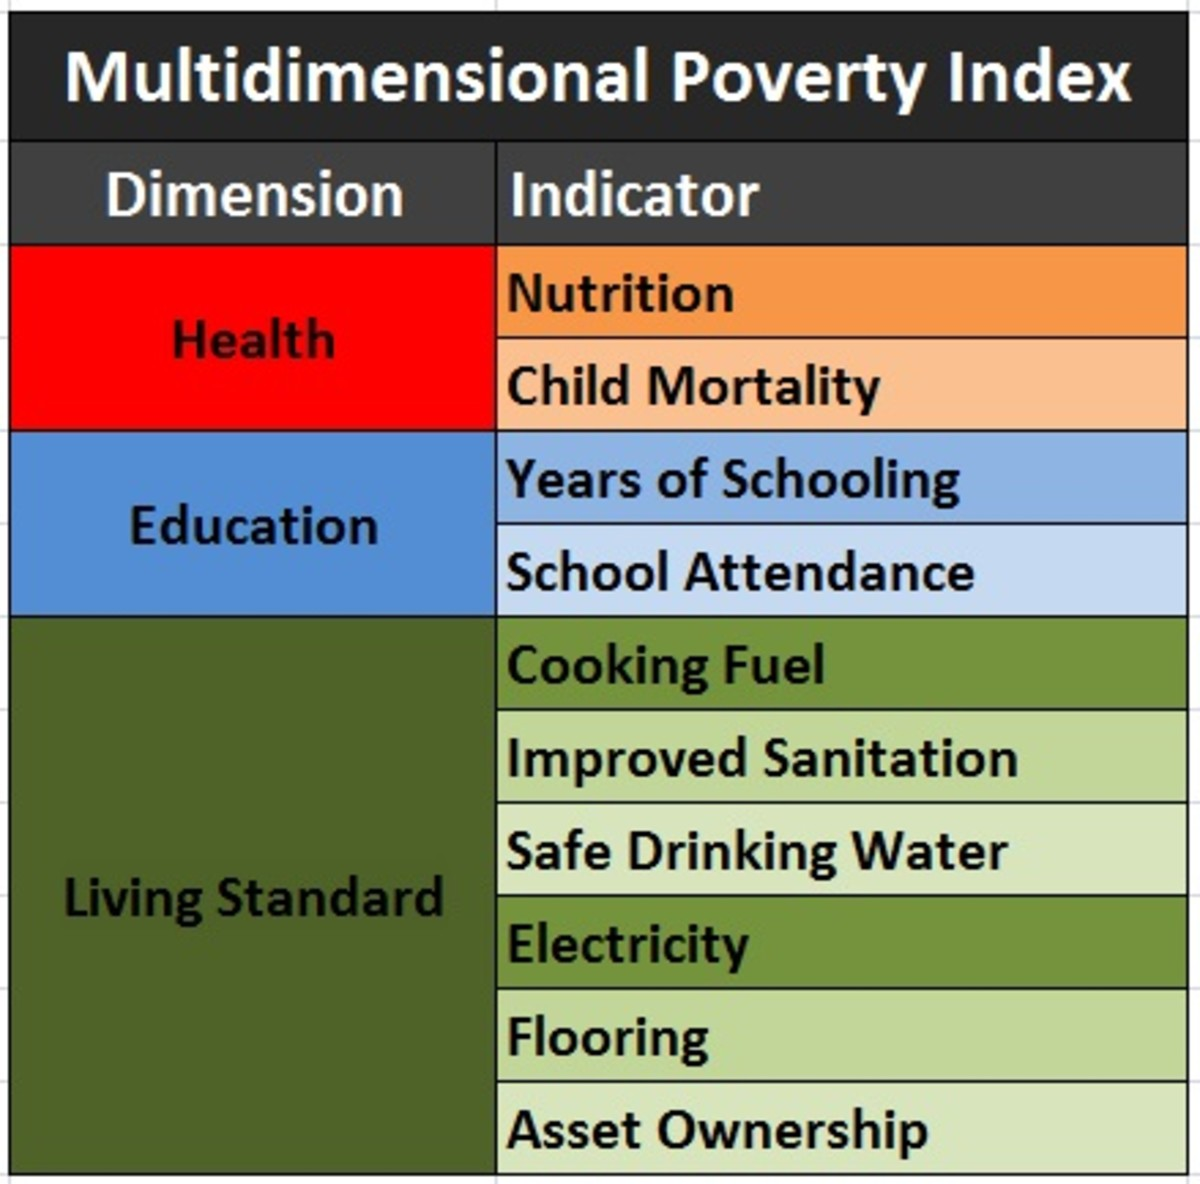 Exploring Global Poverty Using the Multidimensional Poverty Index (MPI)